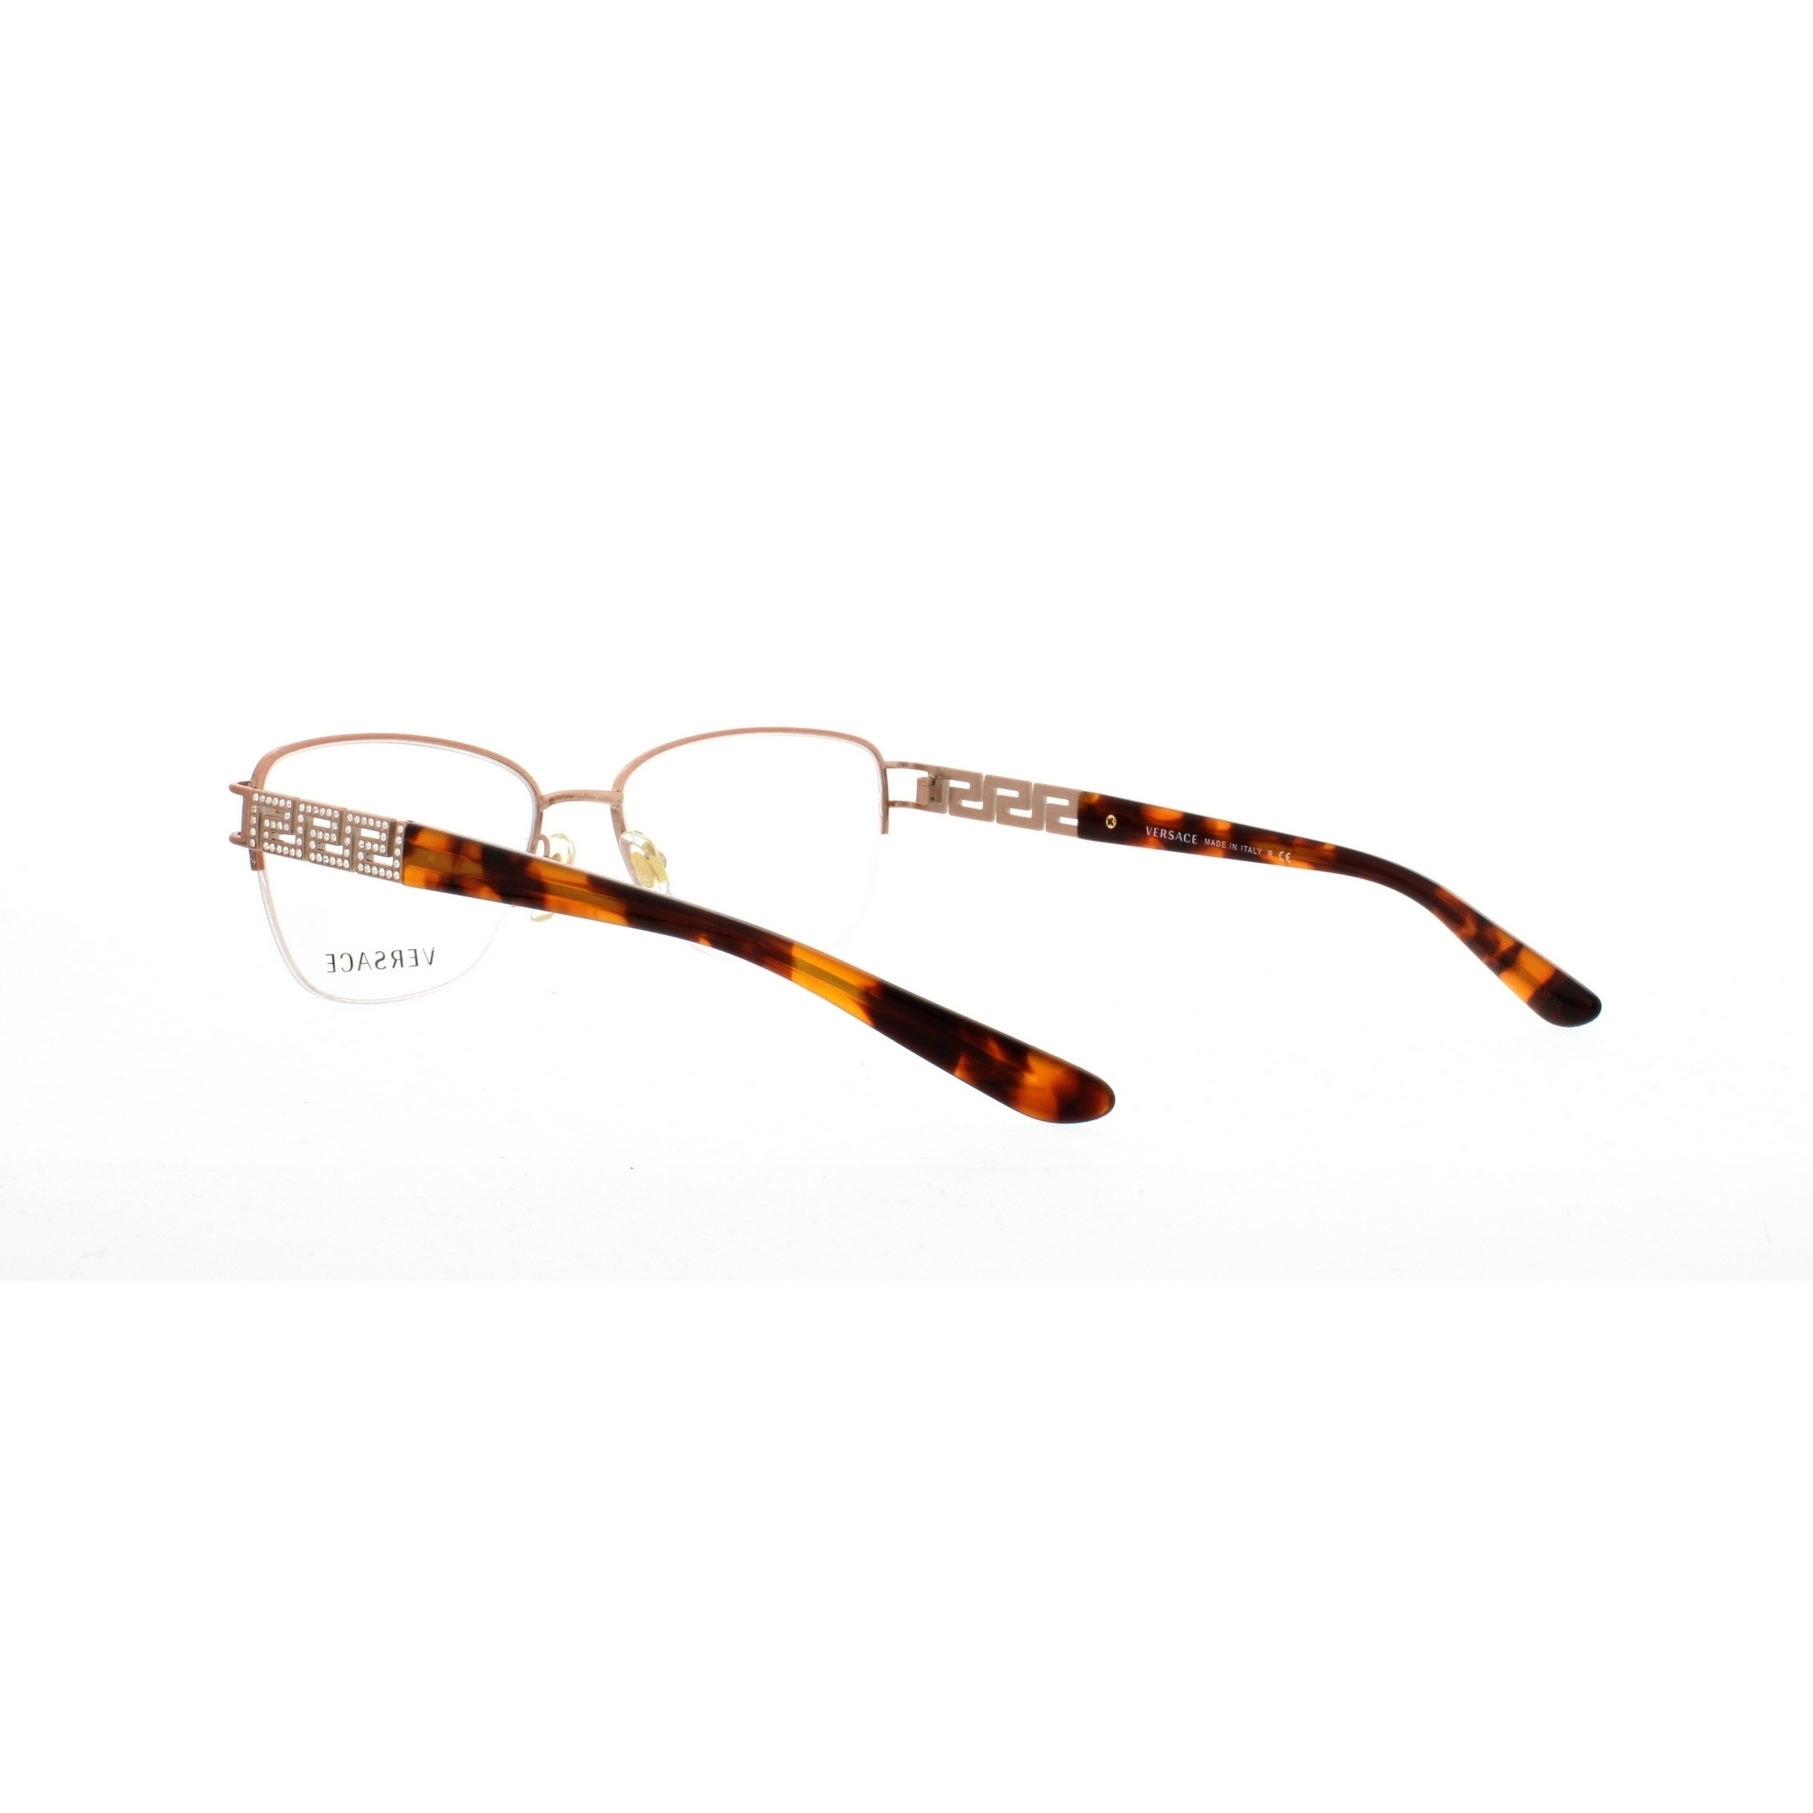 763e447f355d Shop Versace Women s VE1220B 1052 52 Cateye Metal Plastic Brown Clear  Eyeglasses - Free Shipping Today - Overstock - 14780056